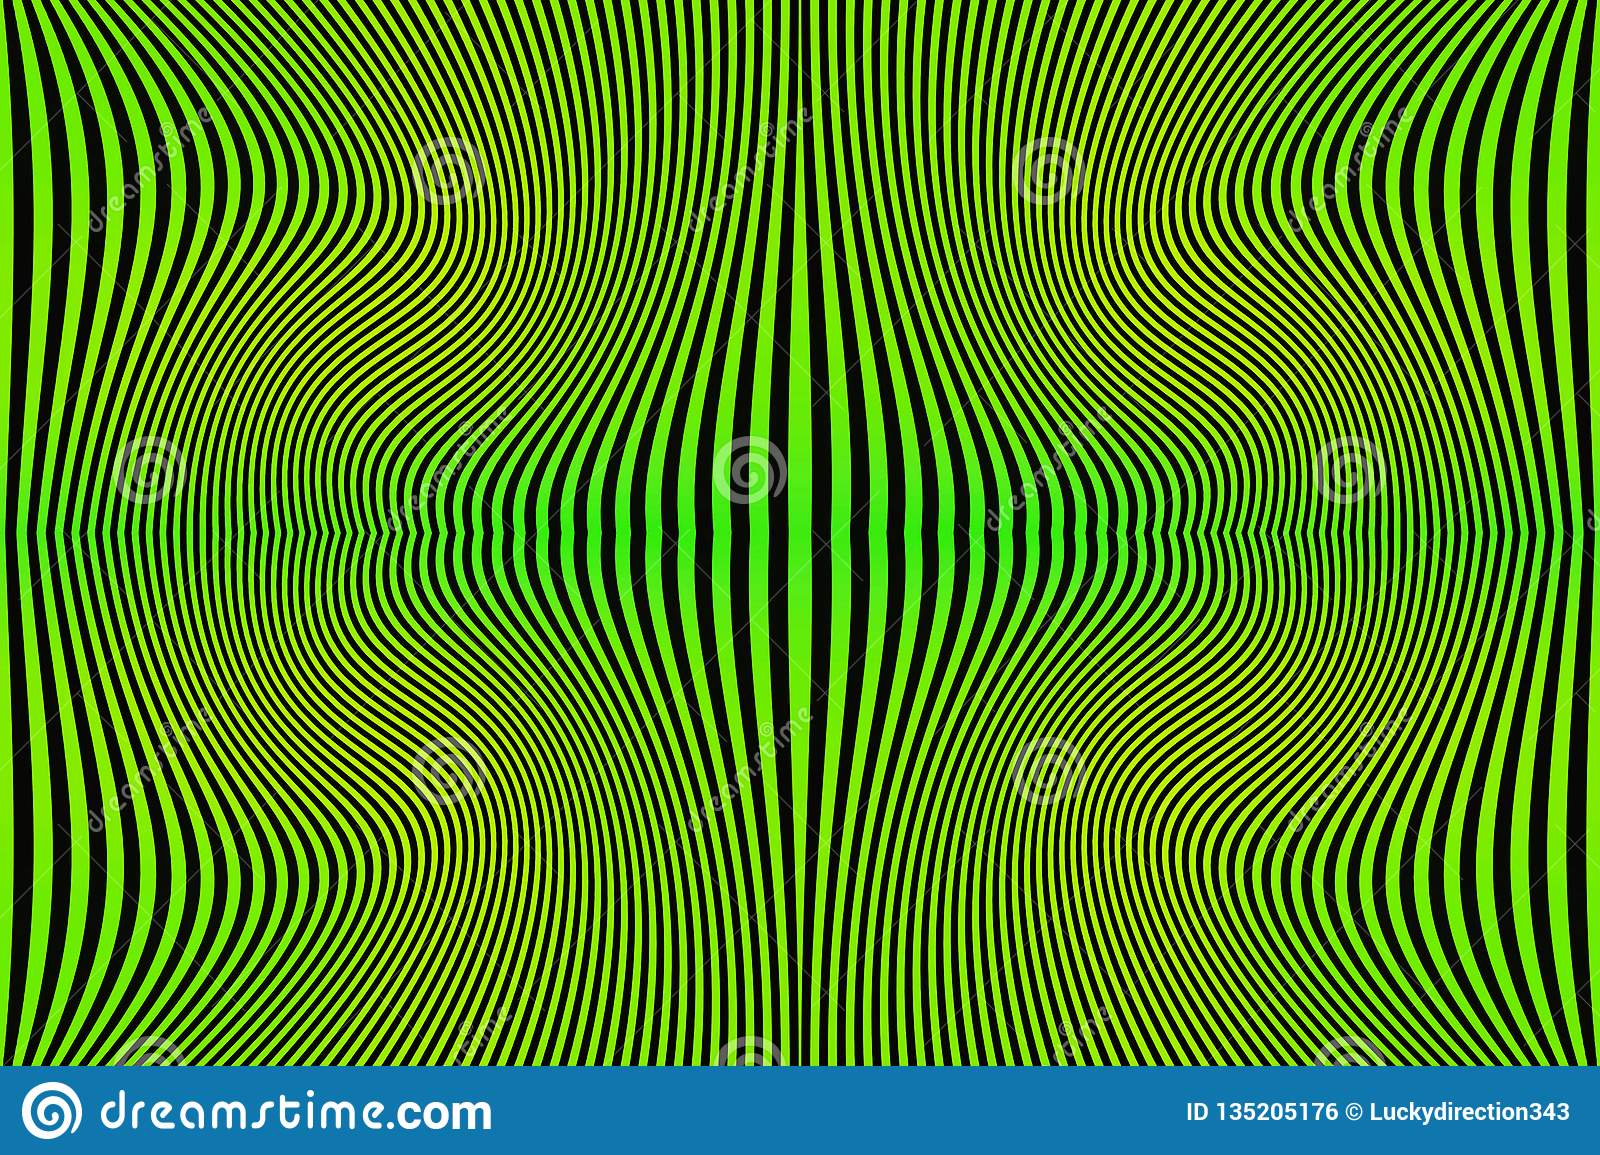 Colorful 3d Abstract Pattern Cool Background Wallpaper Images Patterns Designs Stock Illustration Illustration Of Bright Cover 135205176